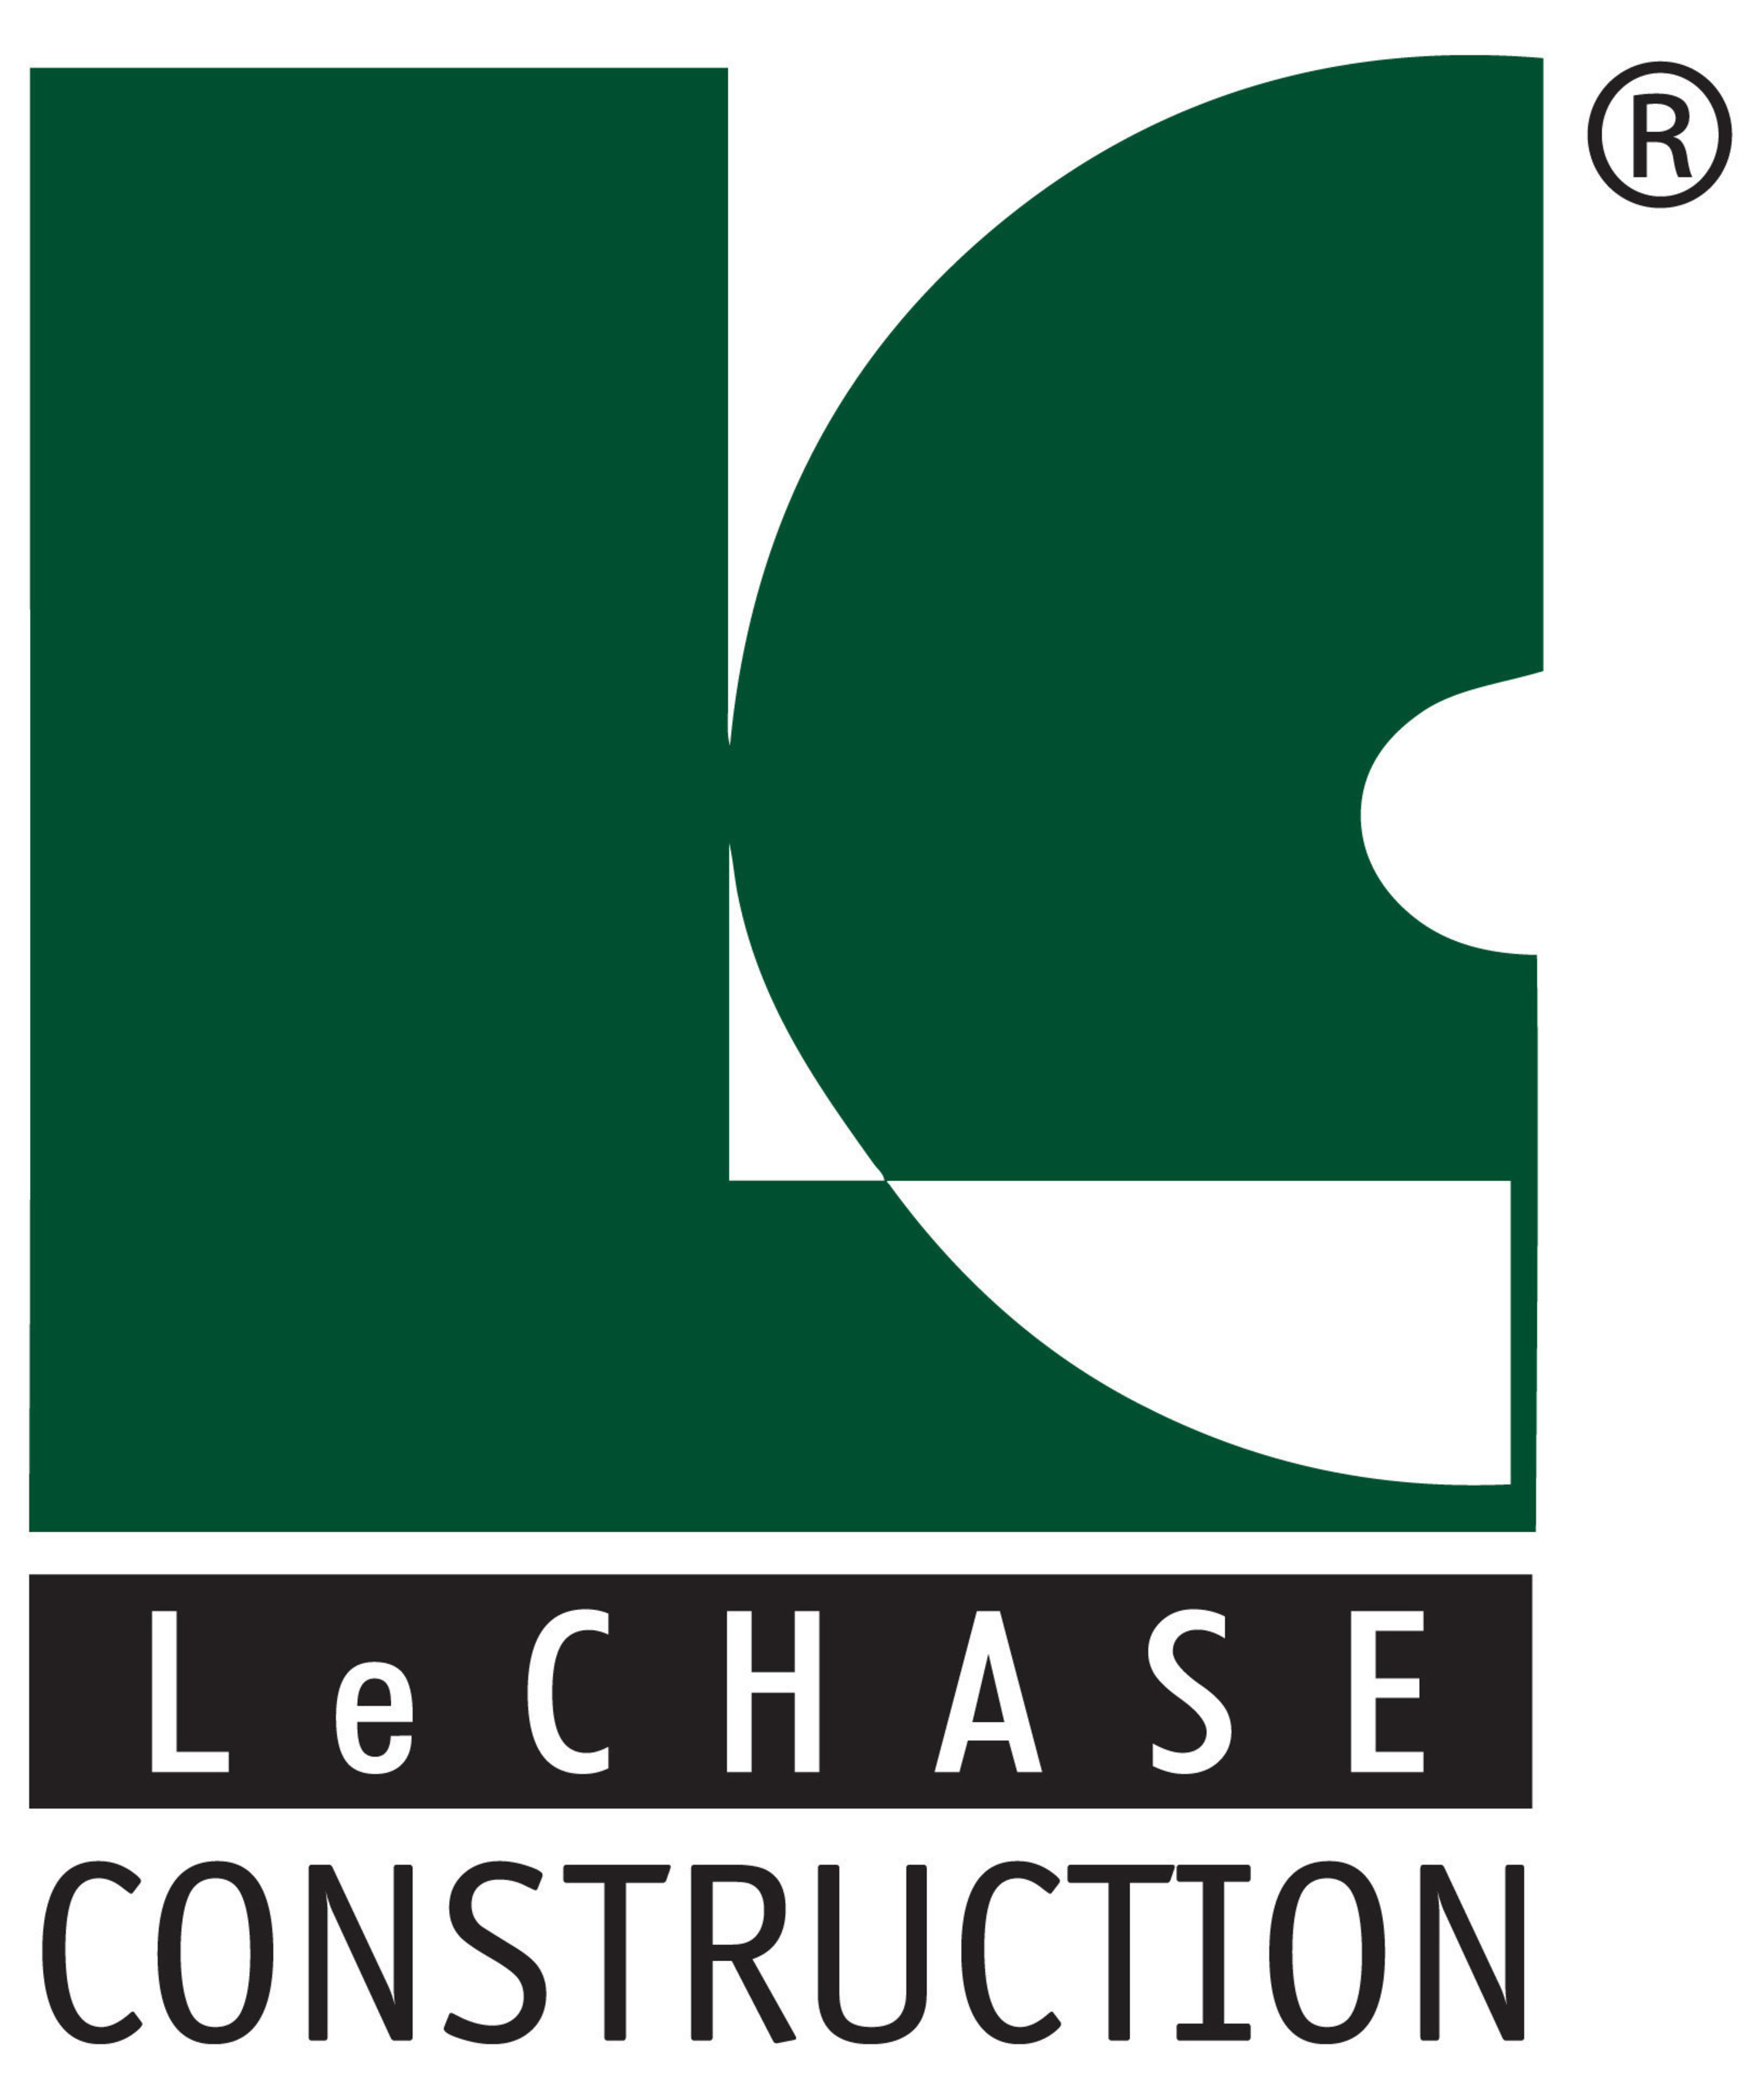 LeChase Construction Services, LLC logo.